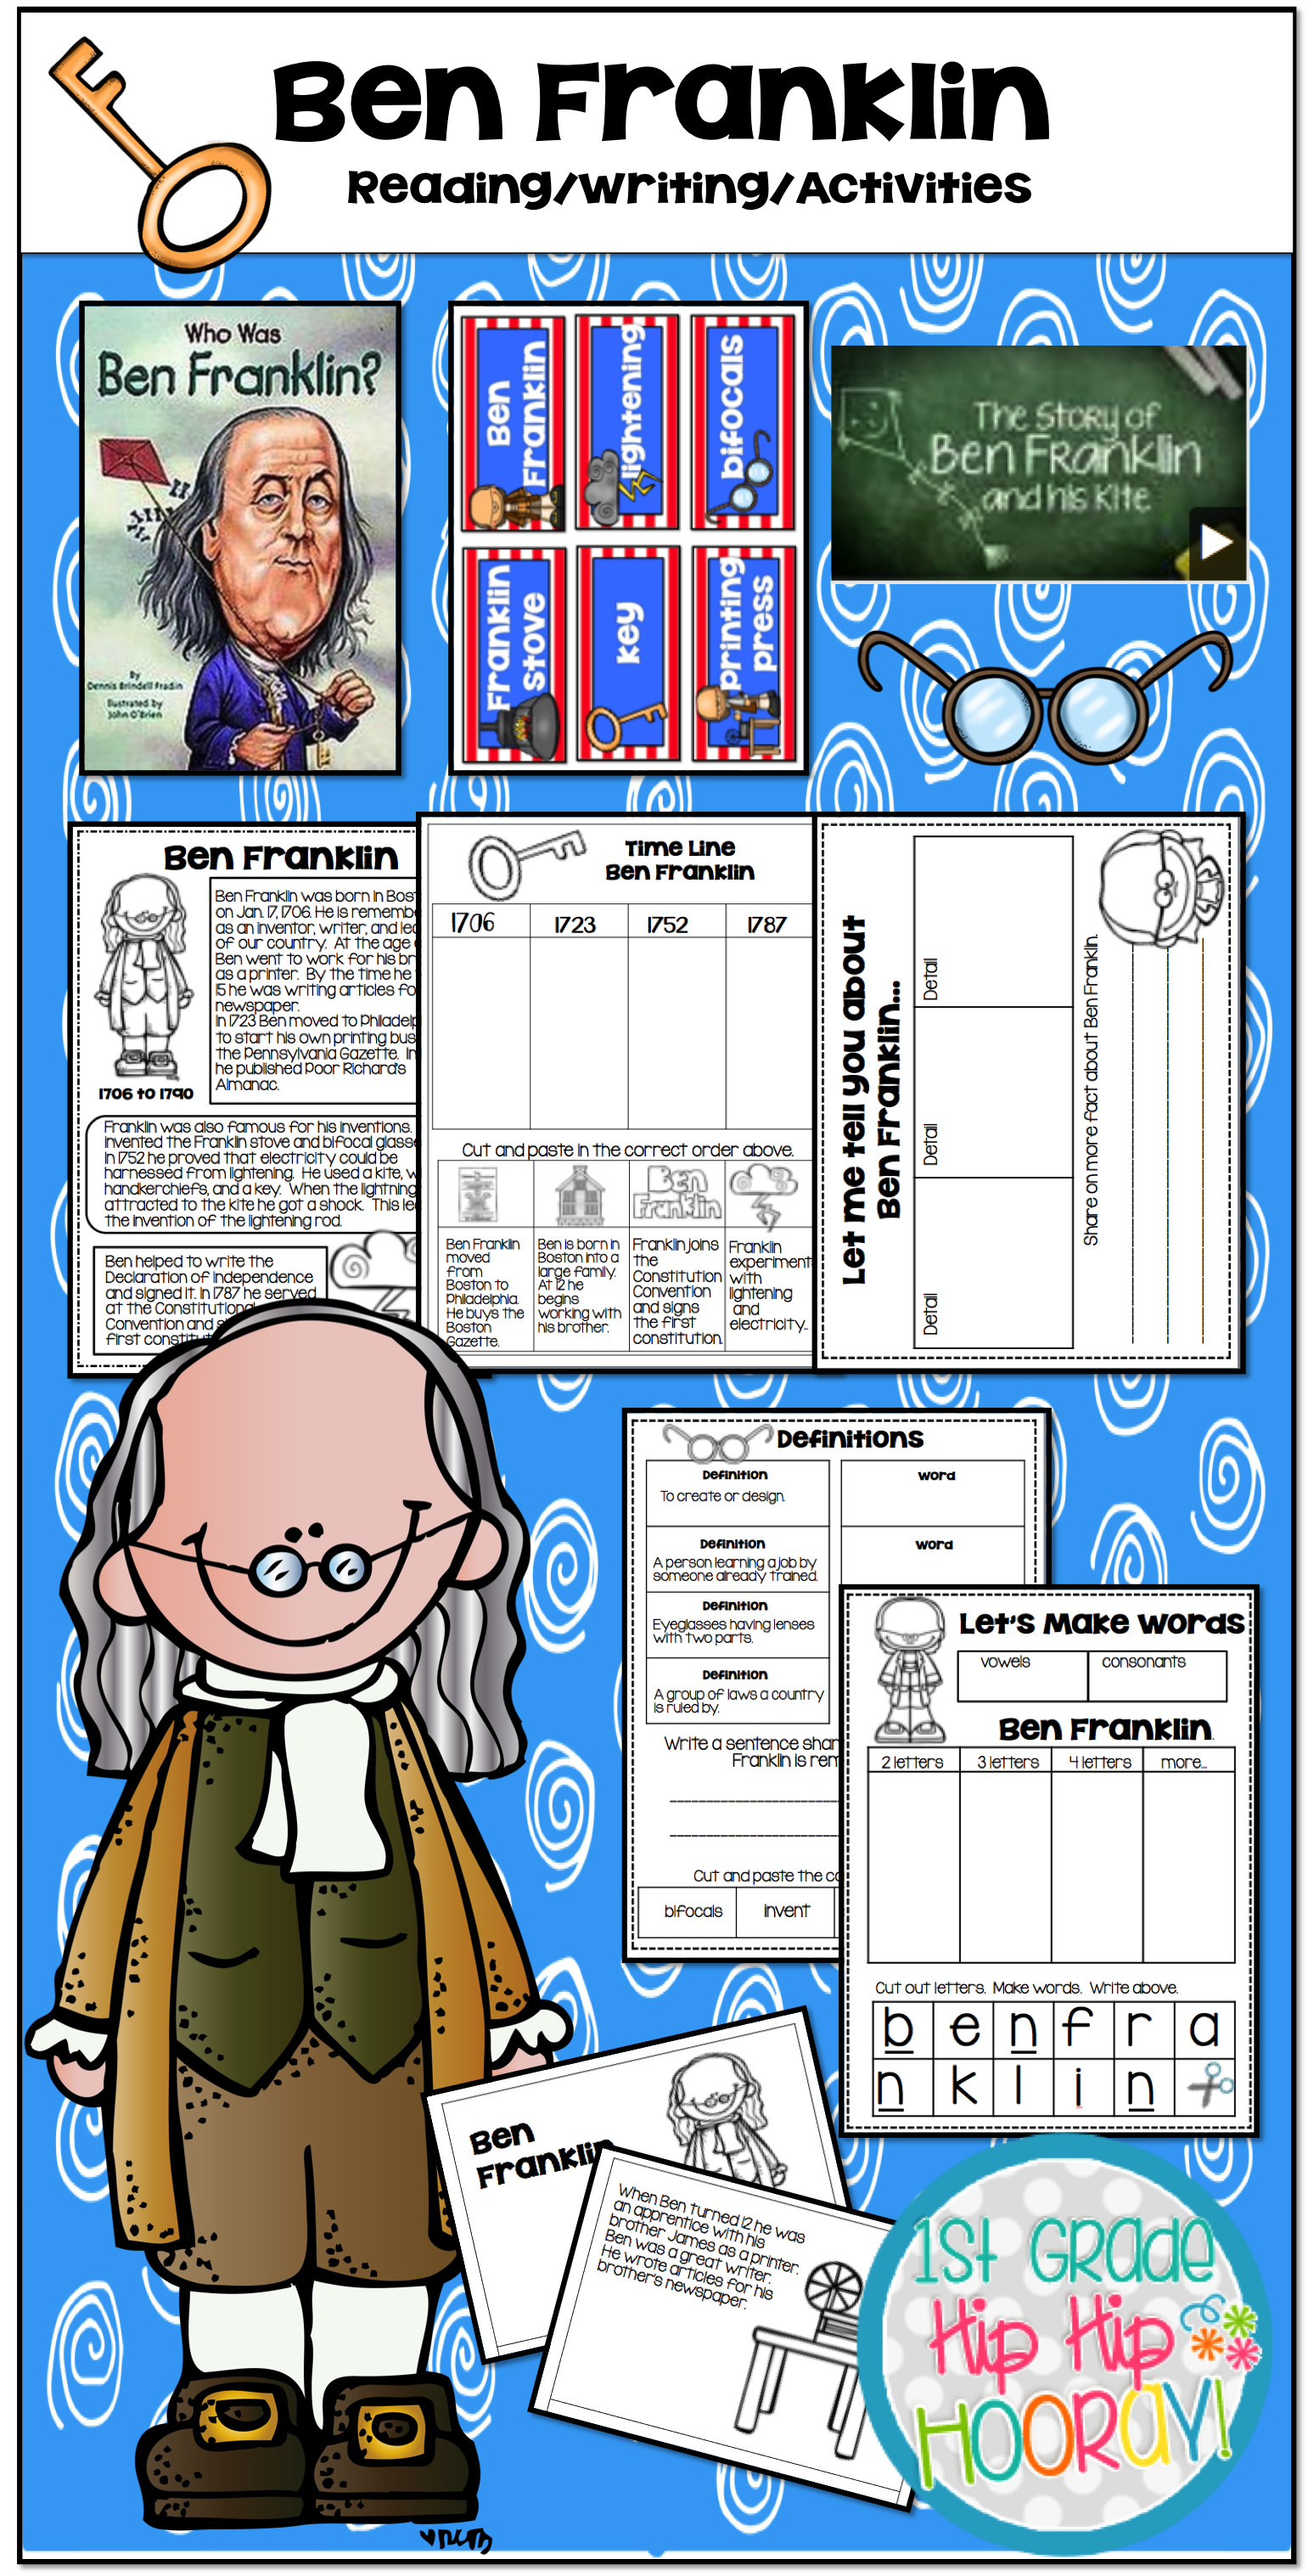 Fun Filled Activities And Research Ideas With Ben Franklin